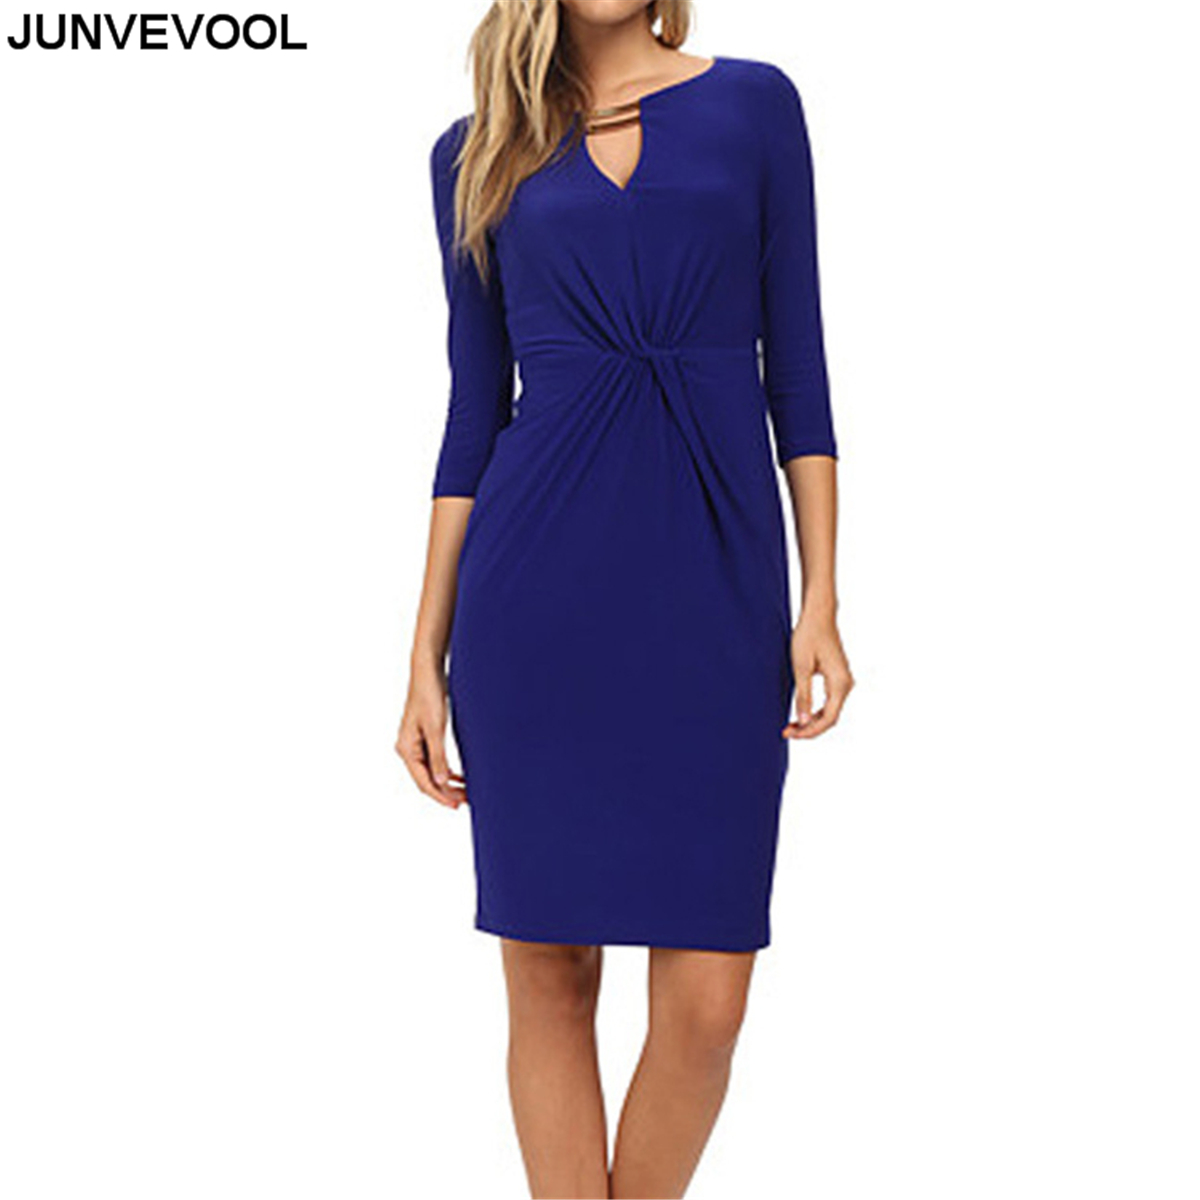 Office Dress Women Summer Casual Elegant Clothing Female